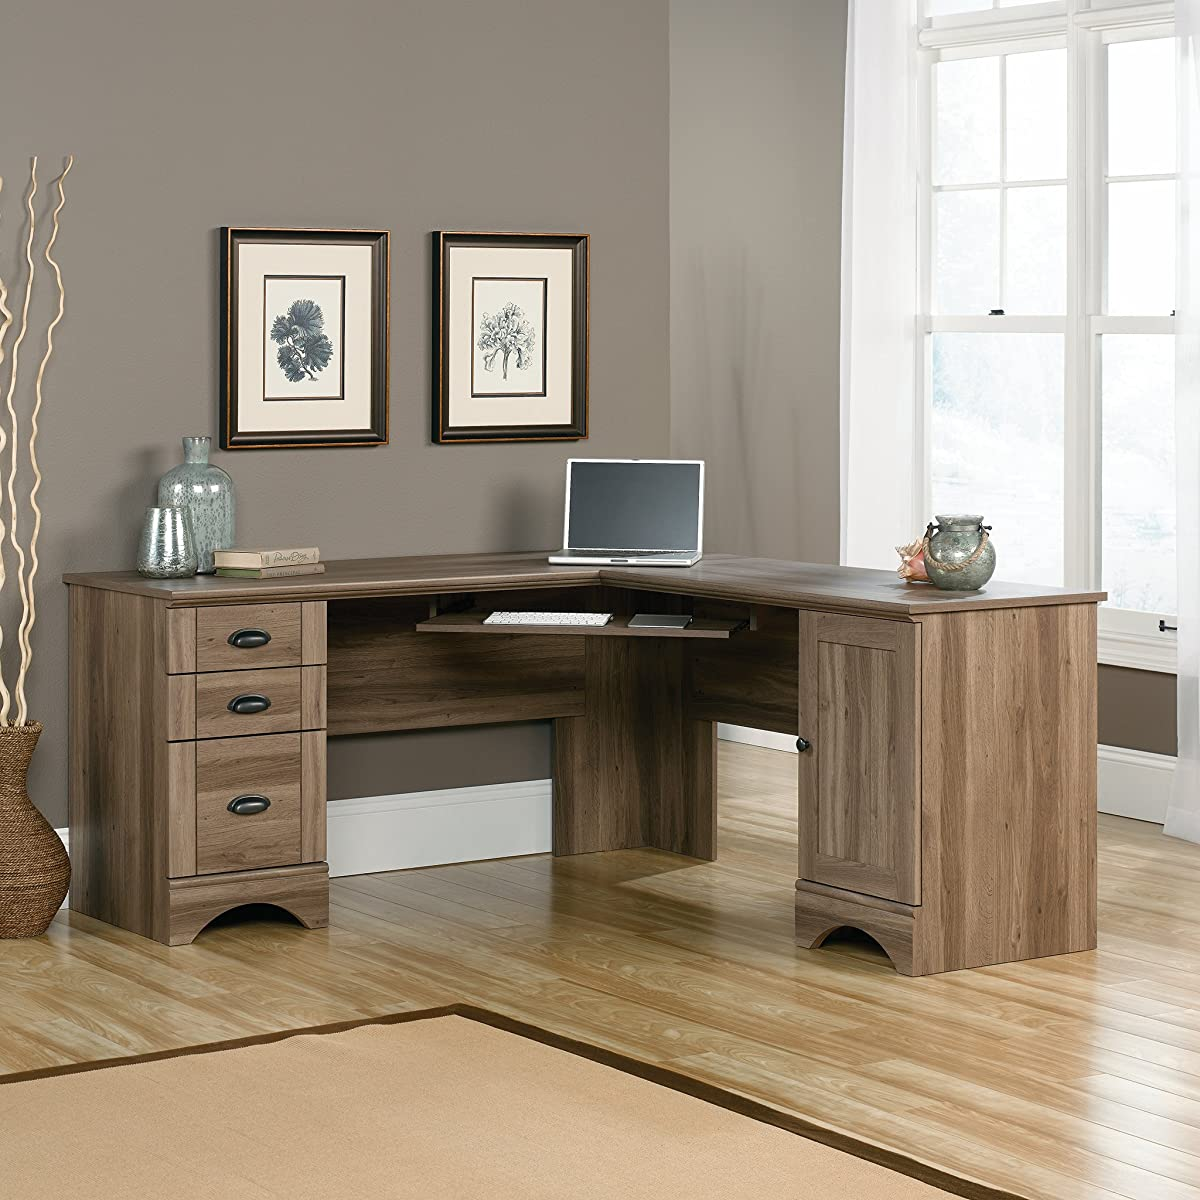 Sauder 417586 Harbor View Corner Computer Desk A2, Salt Oak